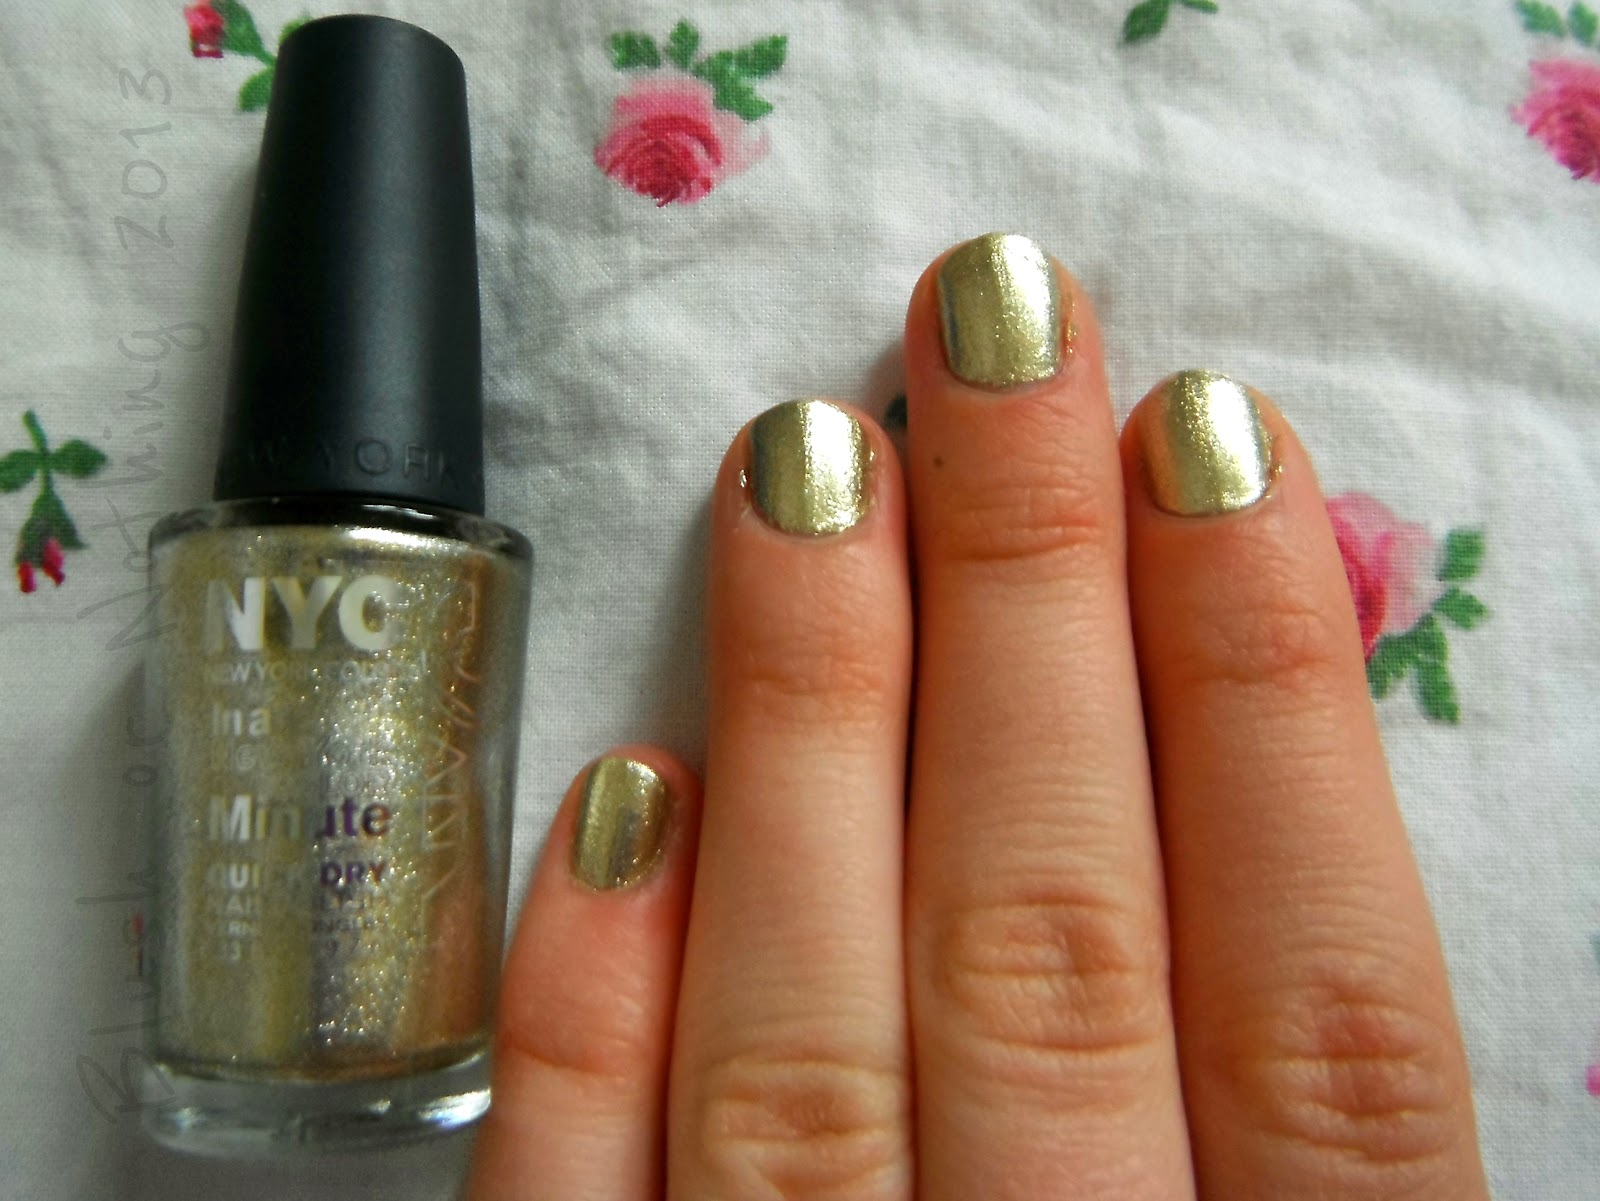 BLUSH OR NOTHING: NYC Full Metal Jacket Review & Swatch.